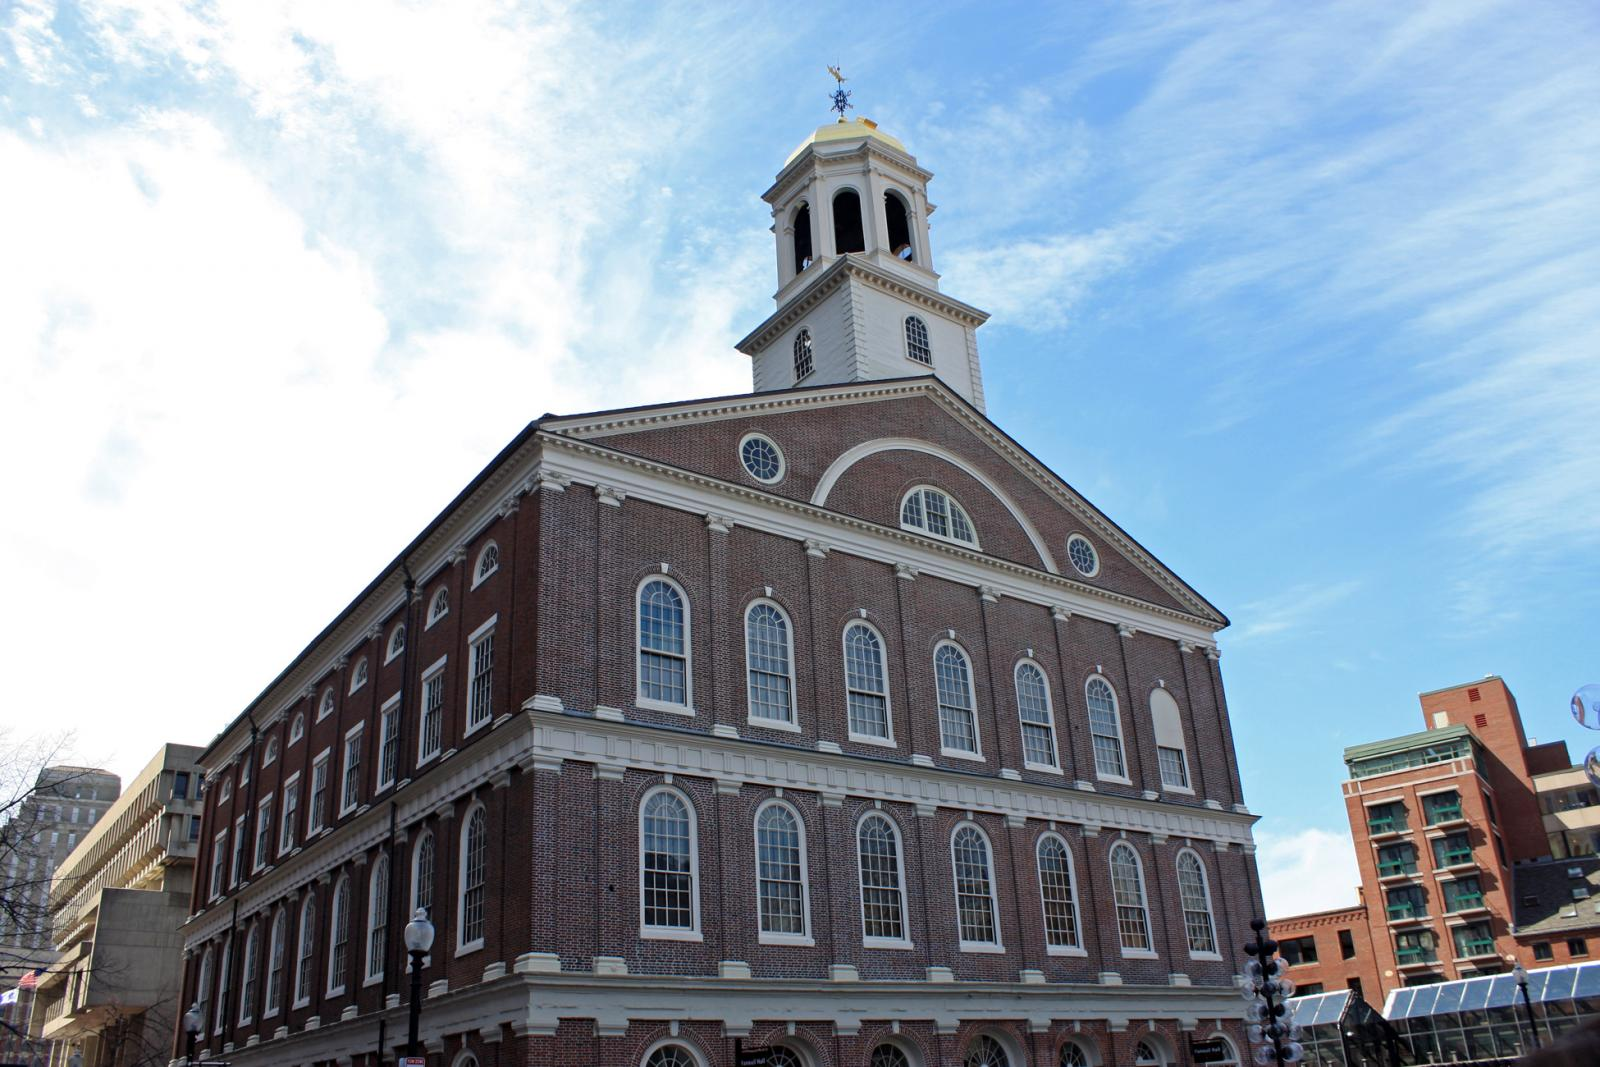 NYC day trip to Boston Faneuil Hall